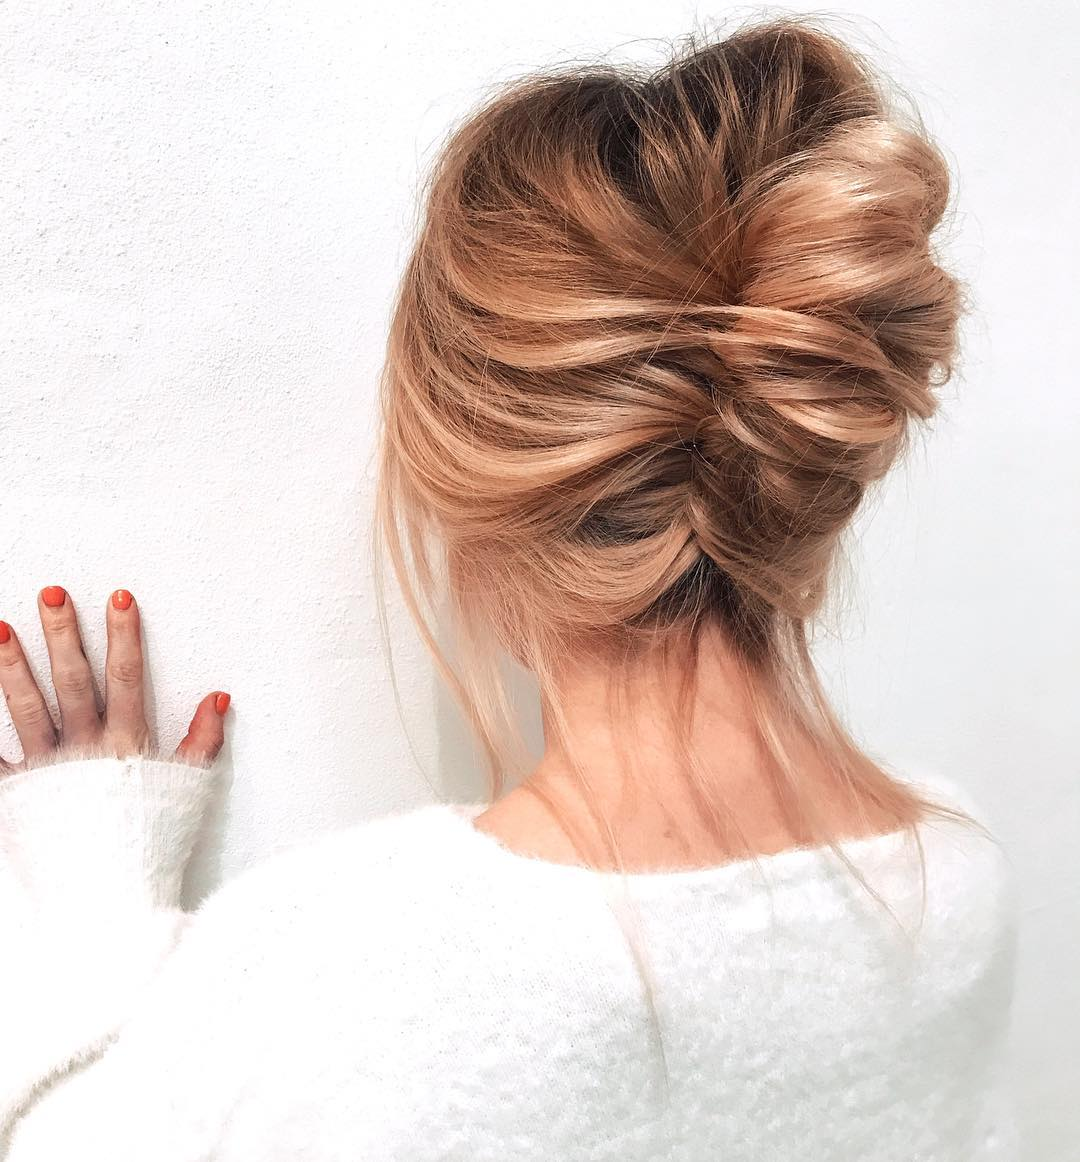 Updo Hairstyle for Double Chins